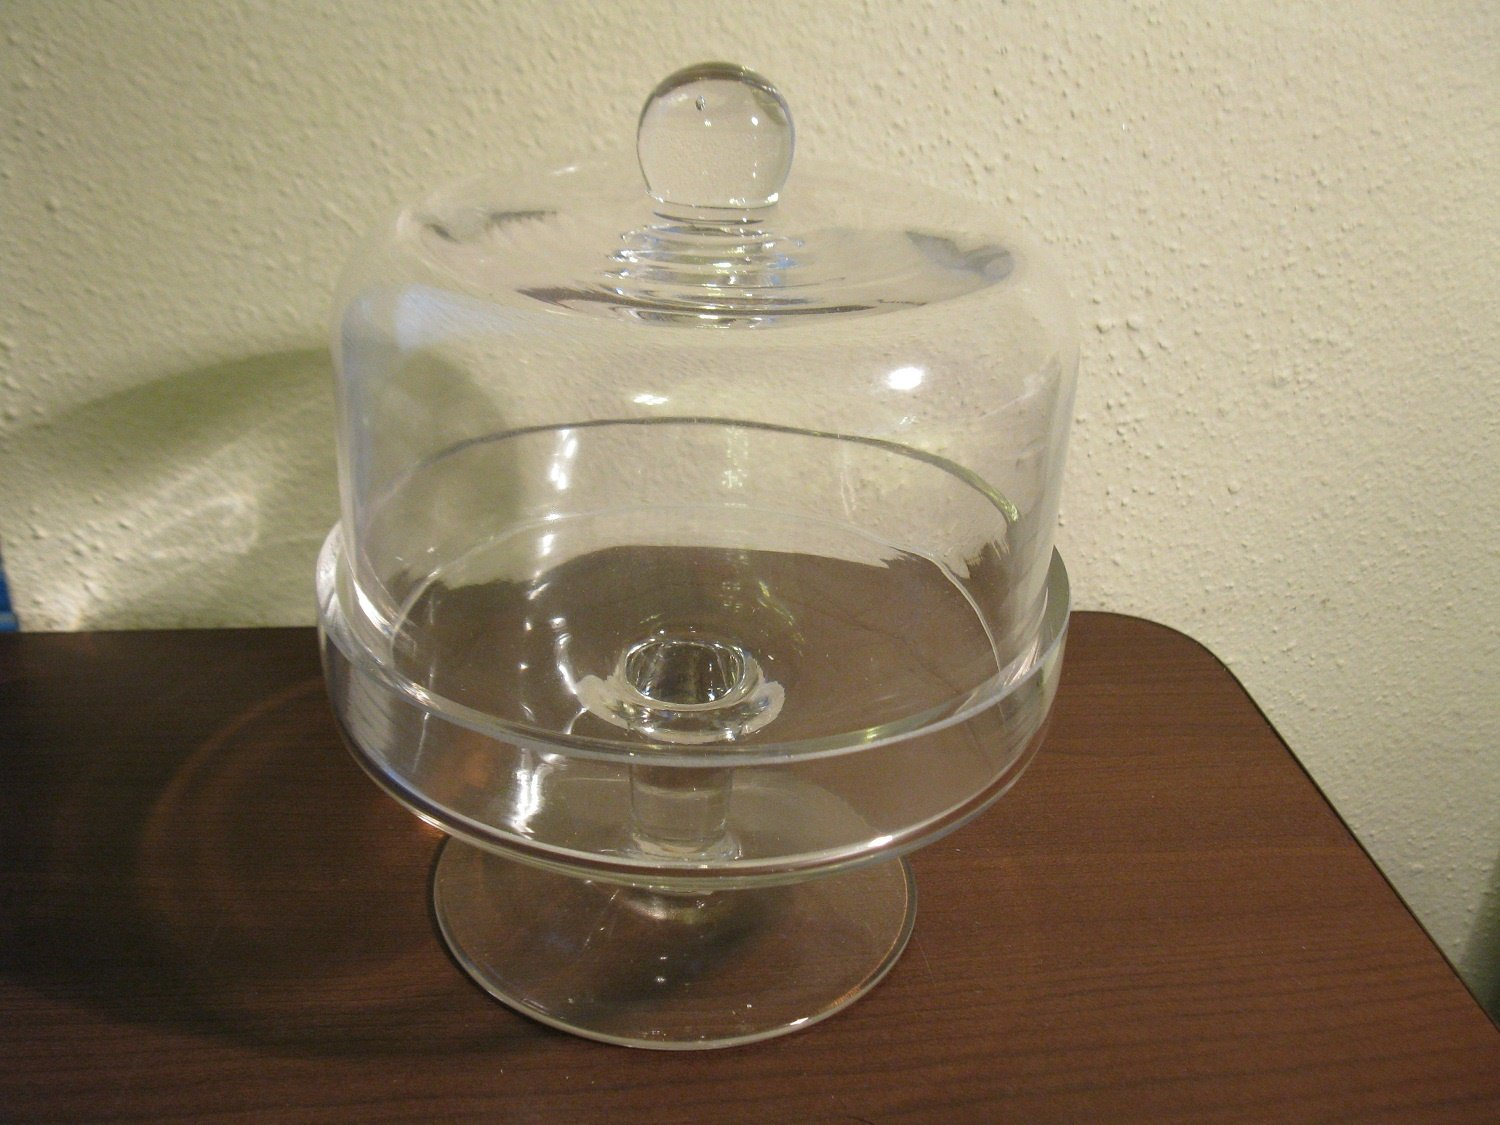 Sale! Taste of Home Clear Glass Small Domed Stand #3001 New! #T1086